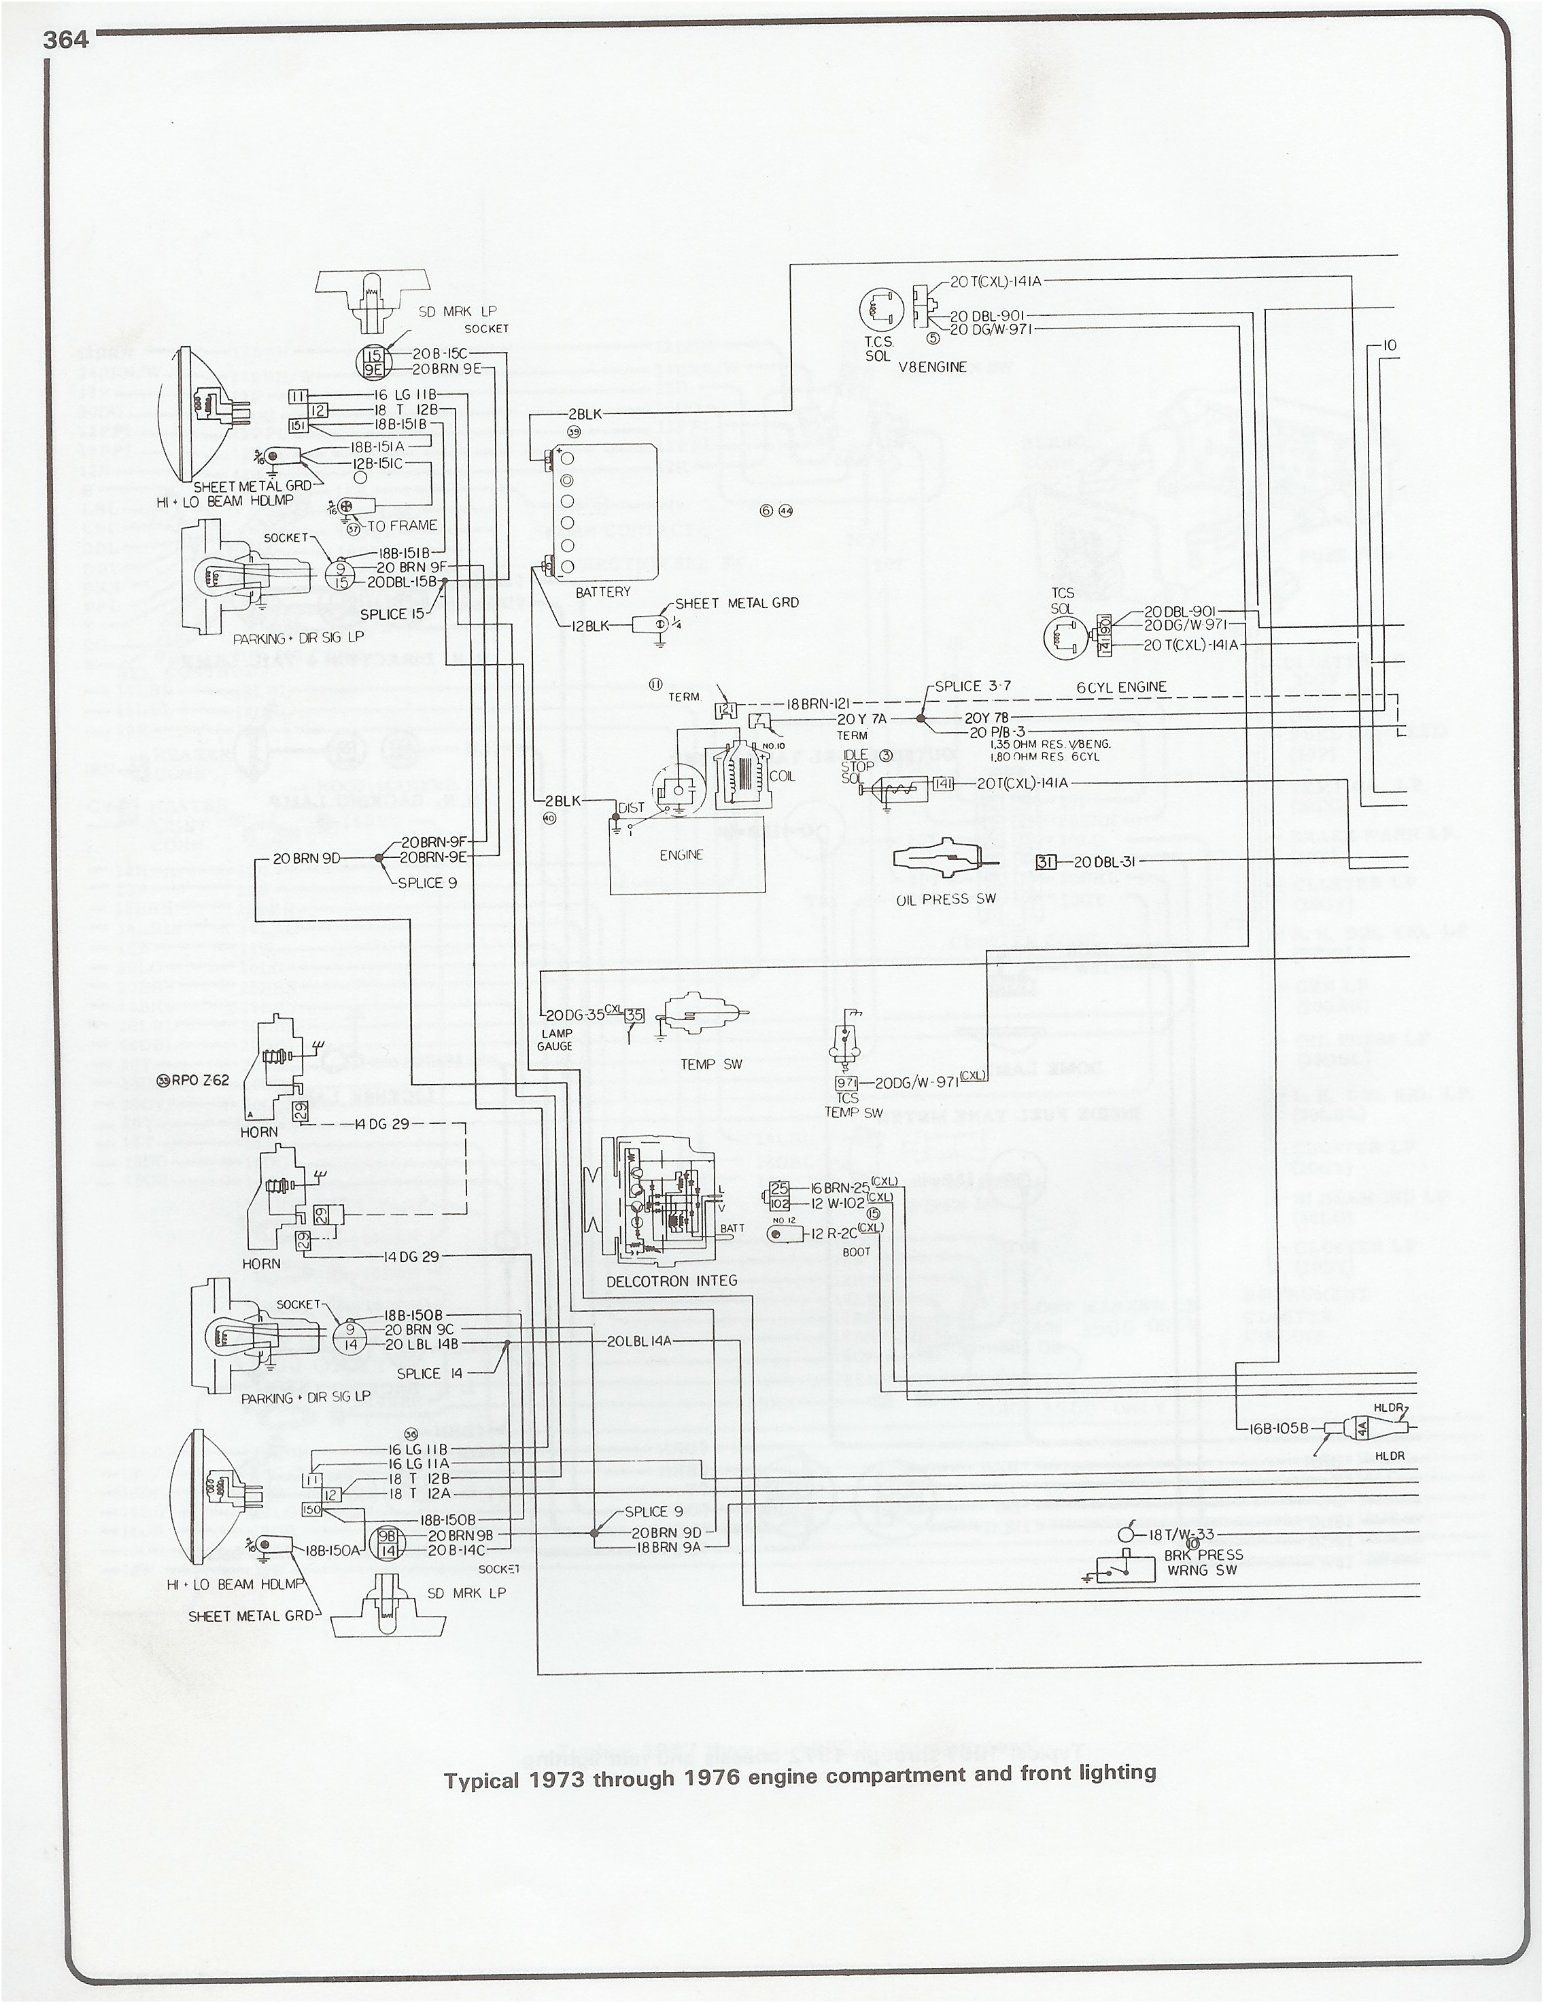 small resolution of wiring diagram 1973 1976 chevy pickup chevy wiring diagram chevy truck gauge cluster wiring harness as well 1976 camaro wiring